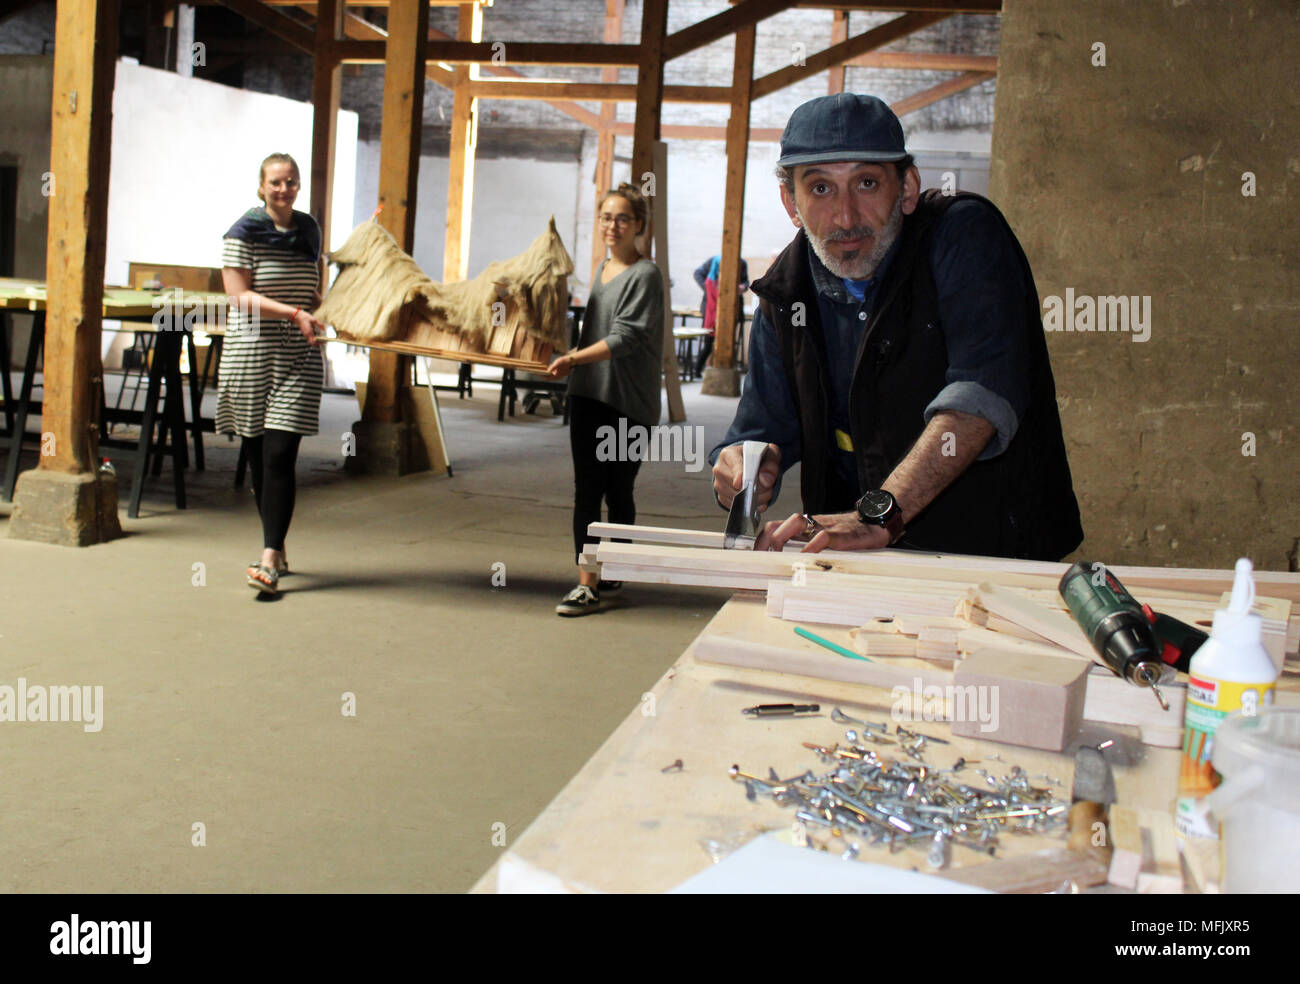 23 April 2018, Germany, Goerlitz: Hussein Daowdi from Syria vuilding a model house for the Goerlitz quarter at the exhibition 'Weltstadt' (lit. world city) and in the background students Michaela Jarosch (L) and Josephine Junker. Photo: Miriam Schönbach/dpa-Zentralbild/dpa - Stock Image